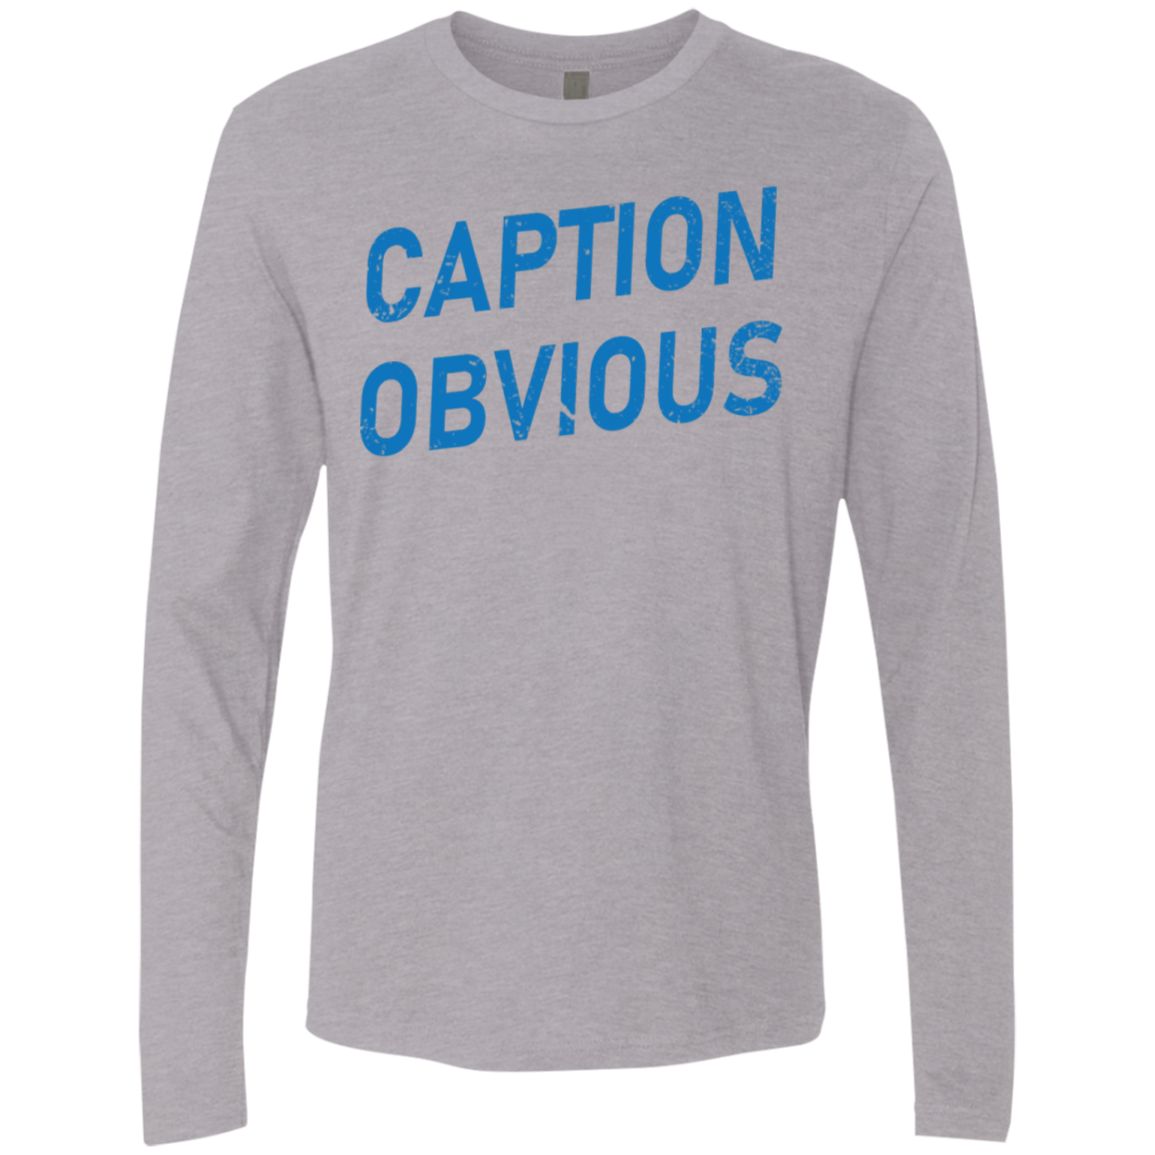 Caption Obvious Men's Long Sleeve Tee